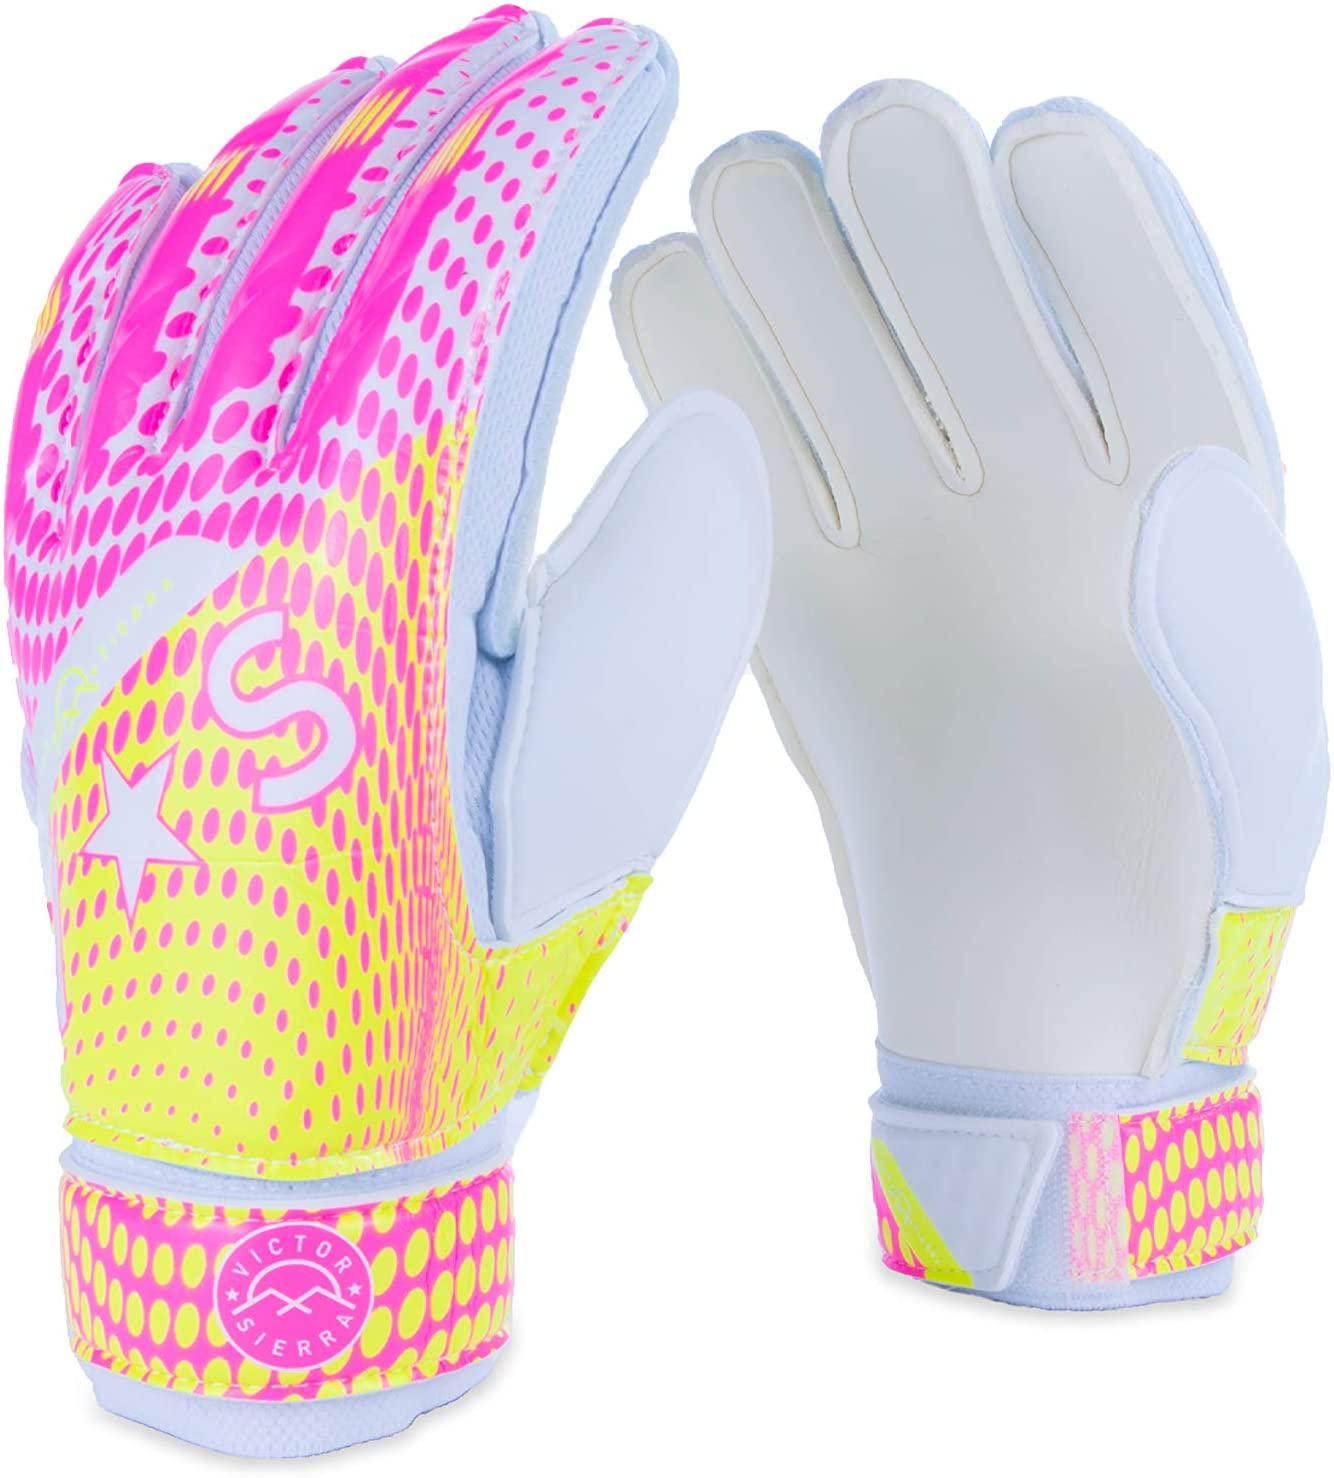 Victor Sierra Recoil Soccer Goalkeeper Gloves for Kids and Adults